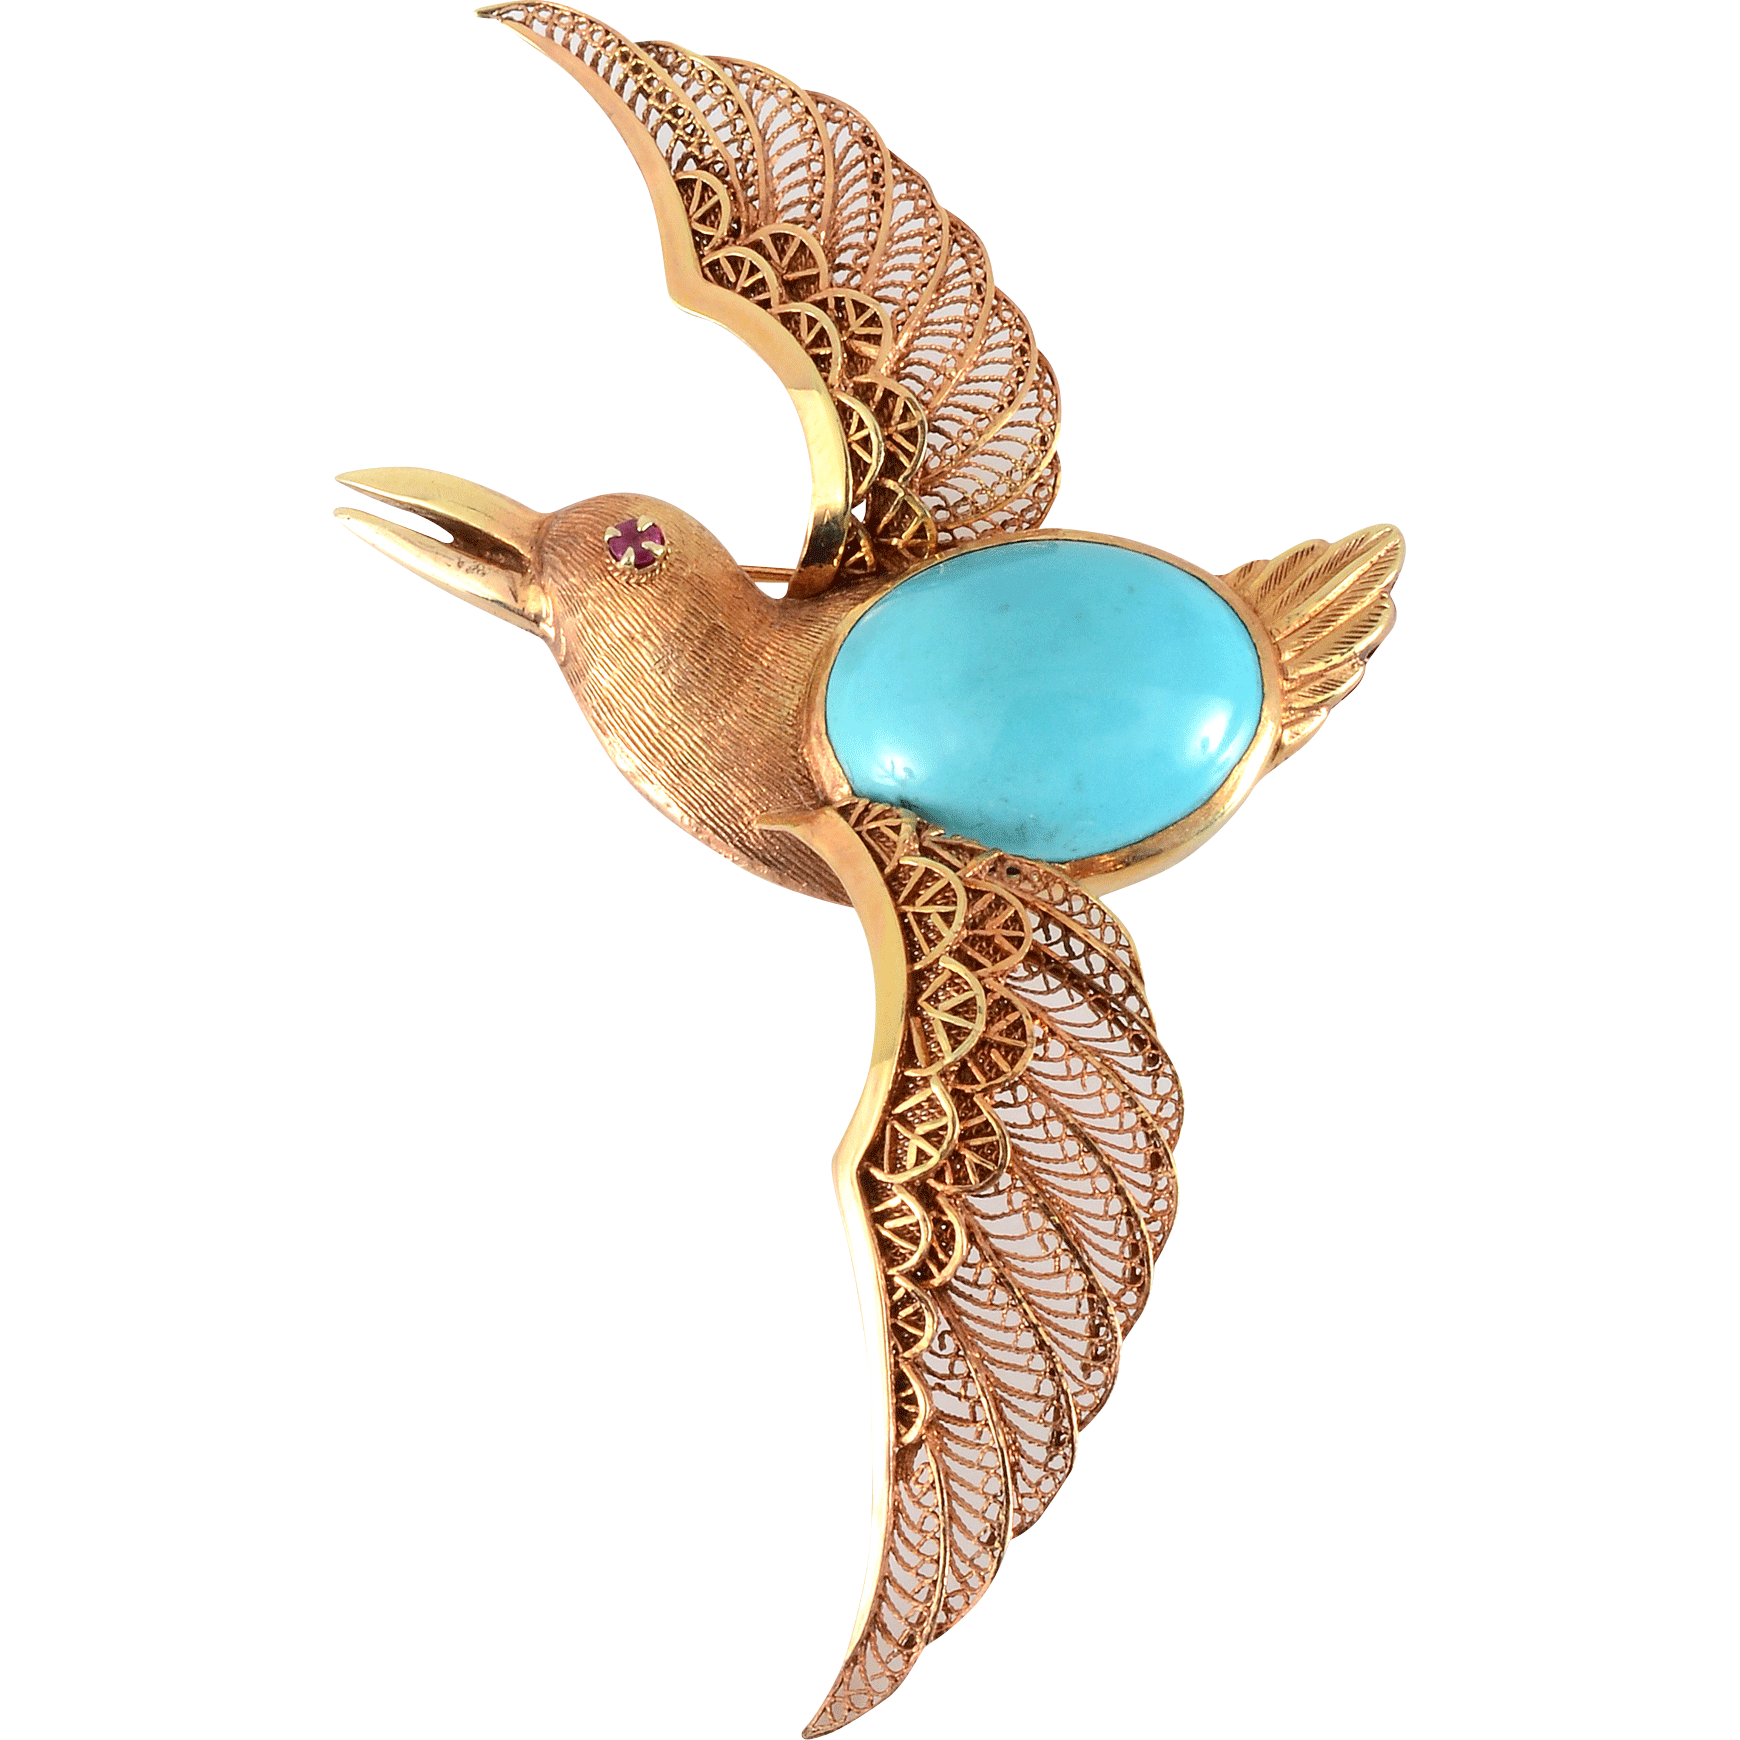 14K Rose Gold Turquoise Flying Bird Brooch with Filigree Wings